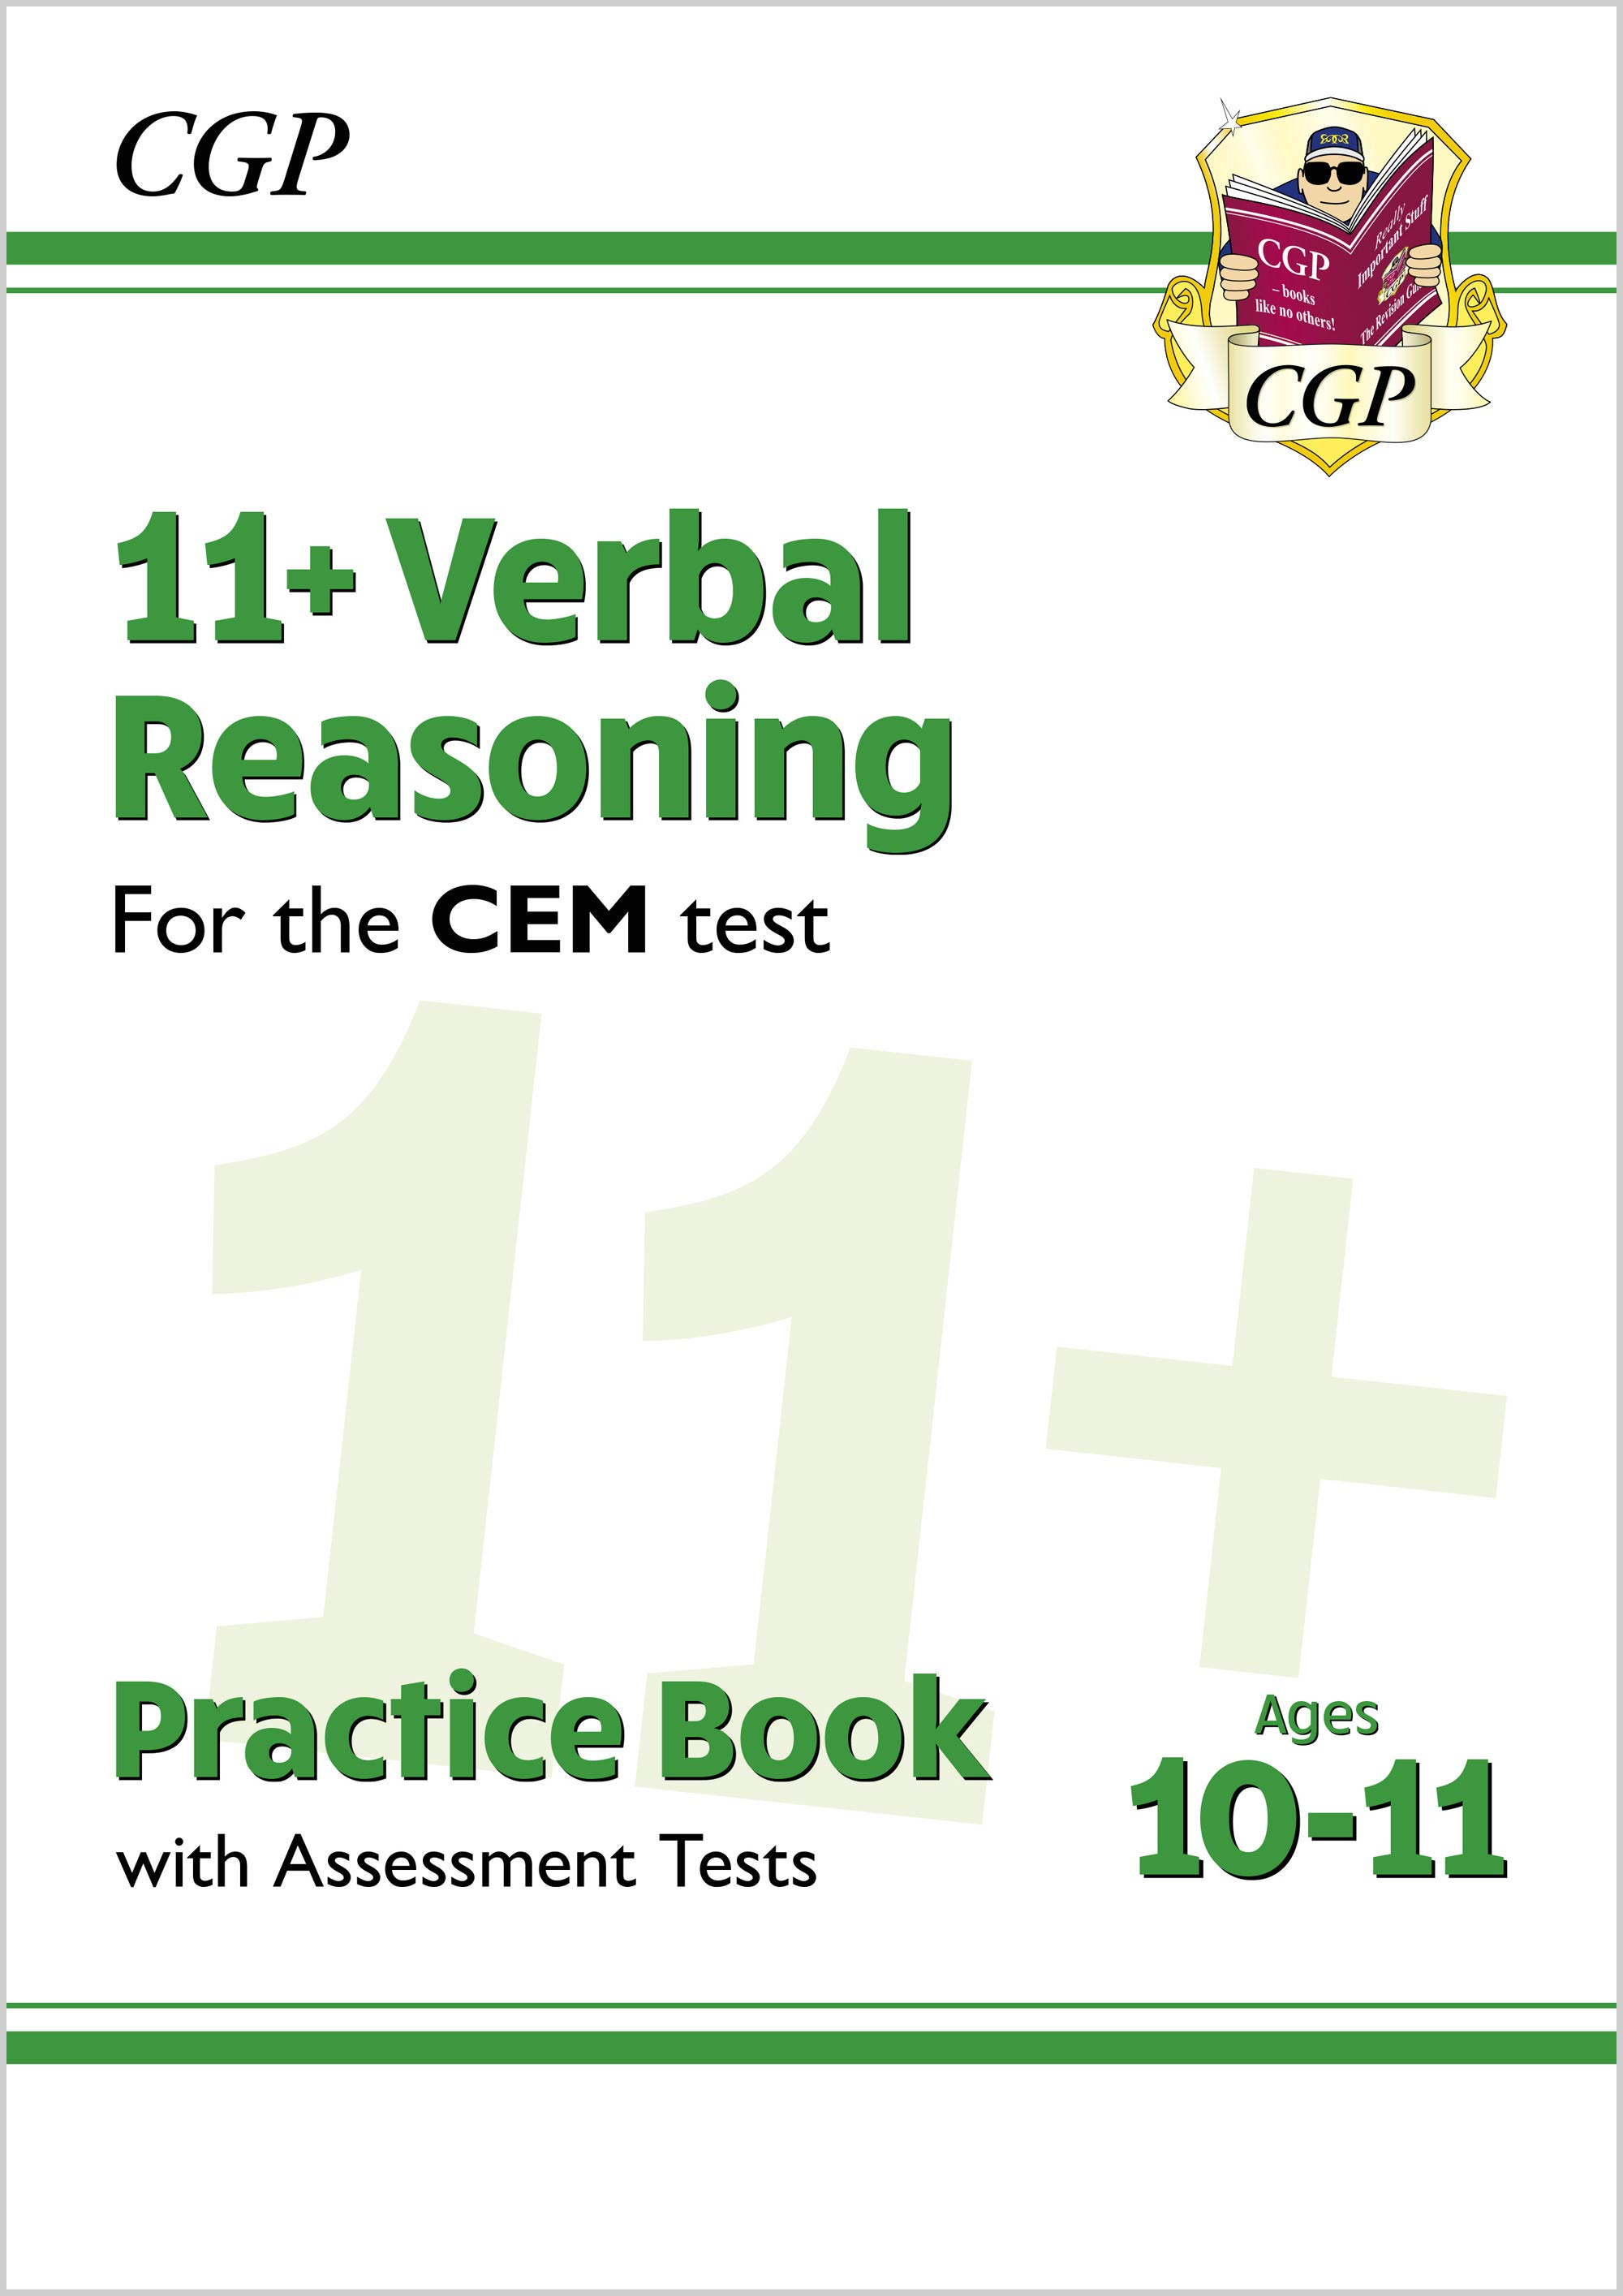 V6QDE2DK - New 11+ CEM Verbal Reasoning Practice Book & Assessment Tests - Ages 10-11 (with Online E